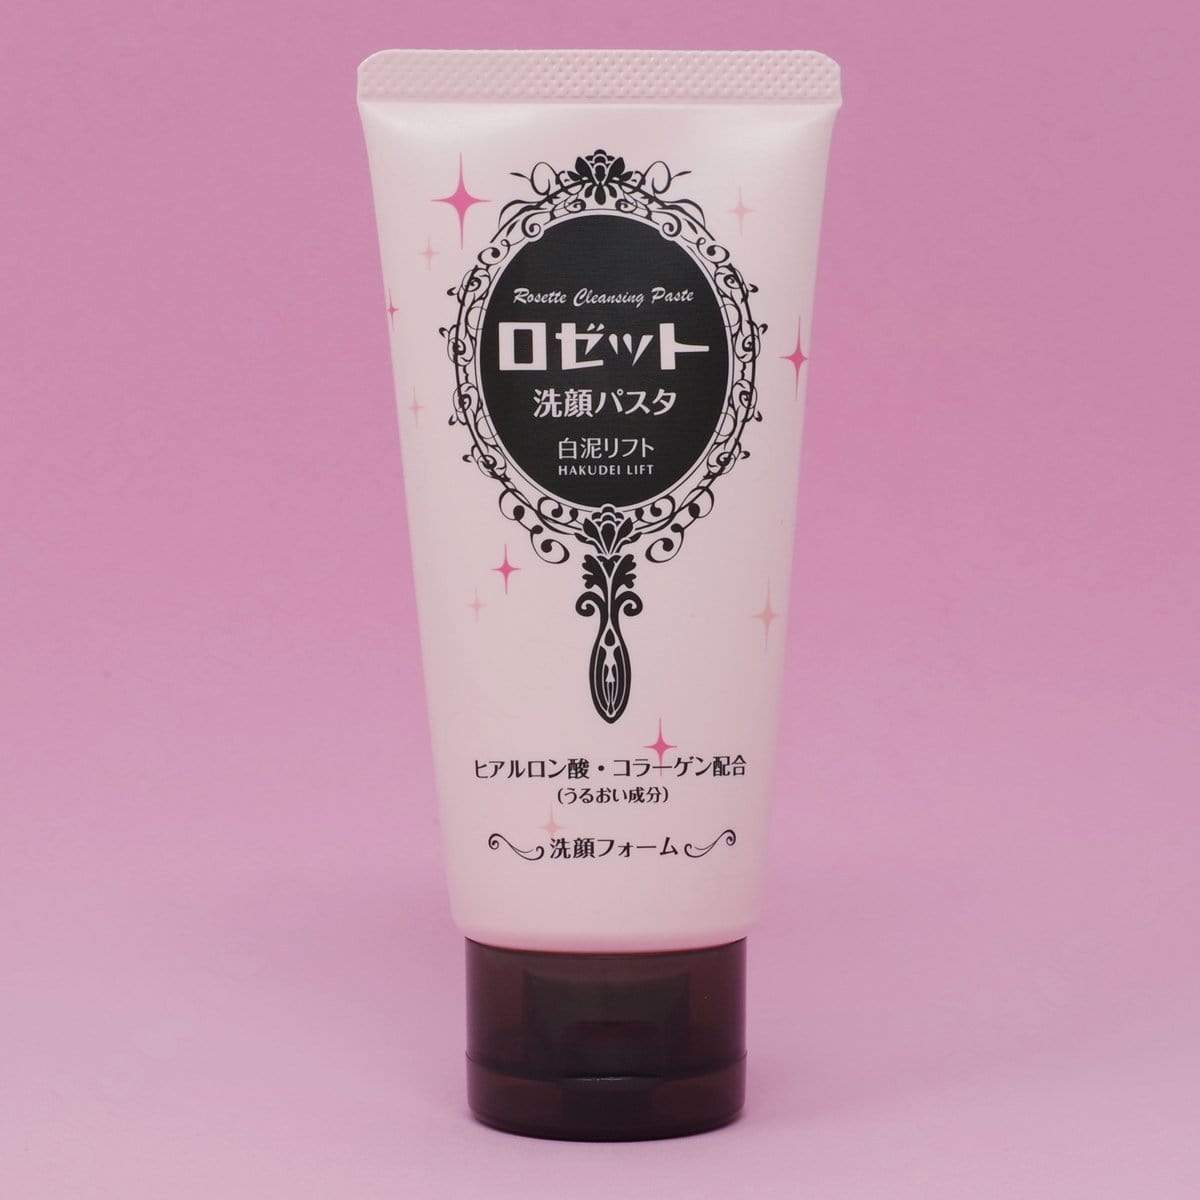 Rosette Hakudei Lift White Clay Cleansing Paste